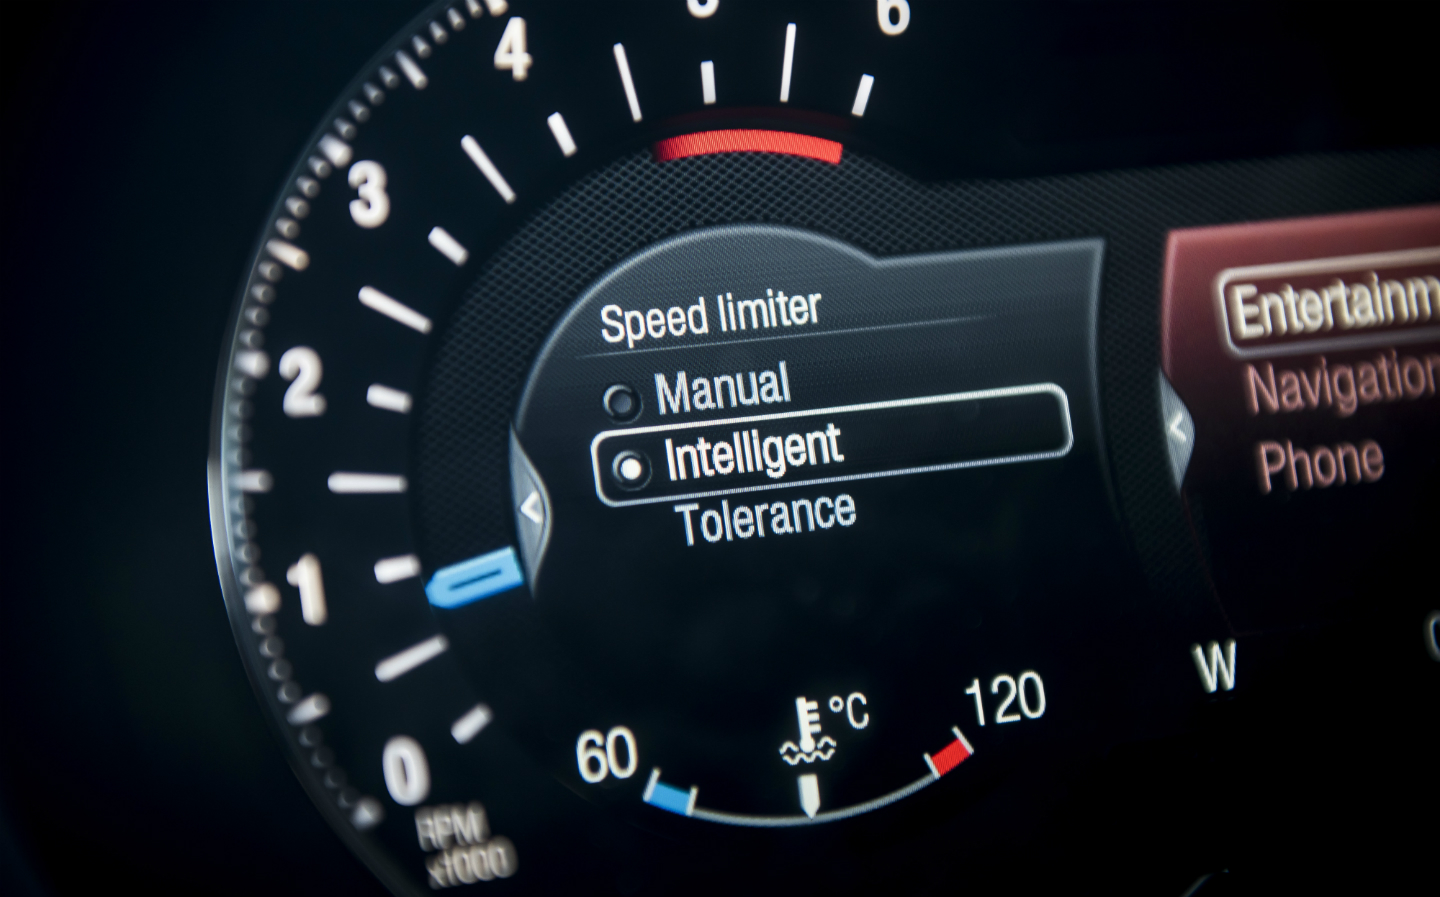 Speeding shutdown – Speed limiters to be mandatory in the UK